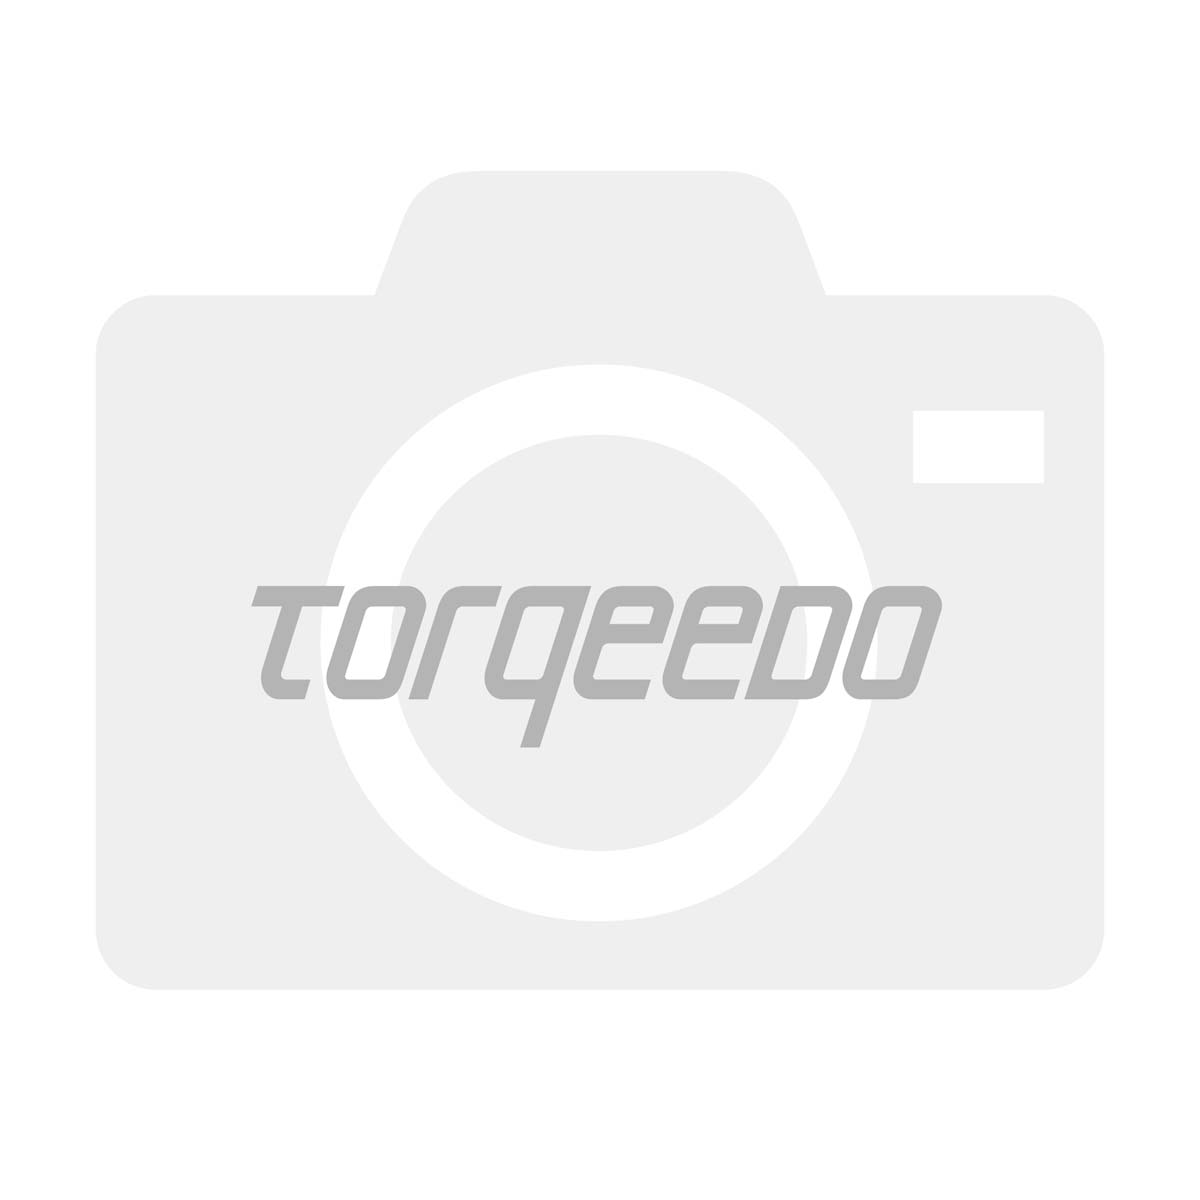 Torqeedo Shaft Seal 25x40x7-NBR-70